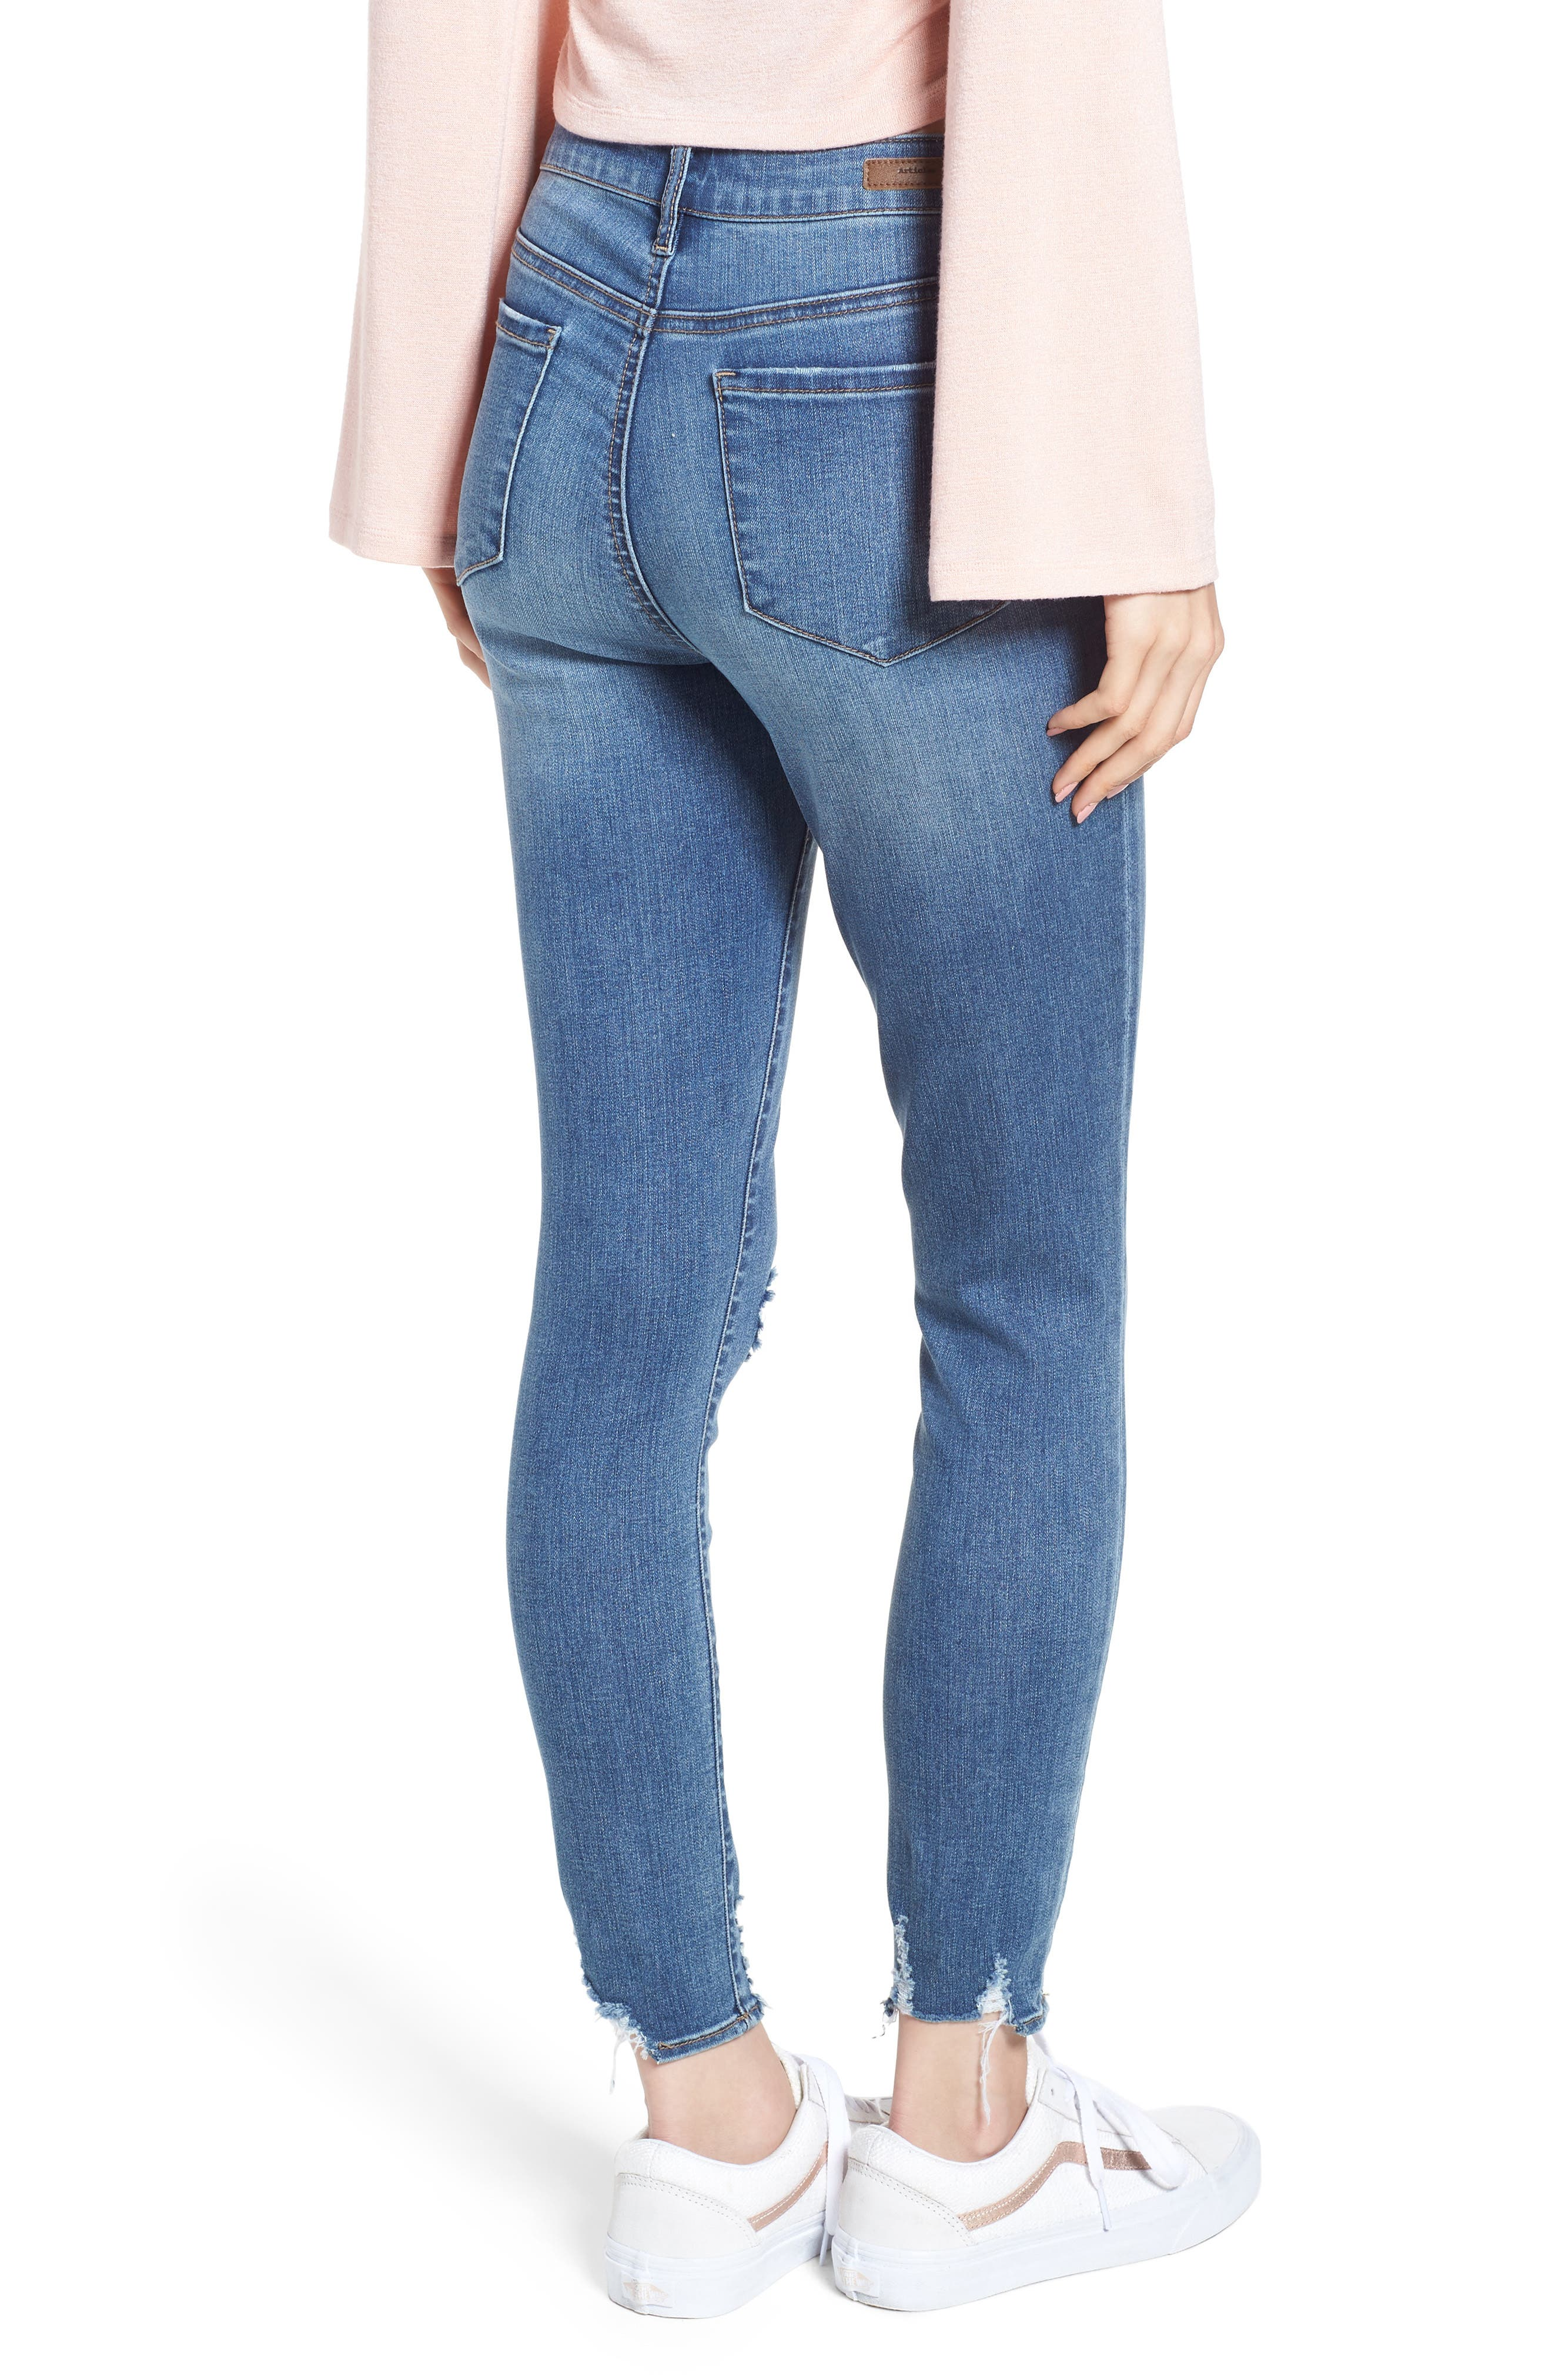 Heather High Waist Distressed Skinny Jeans,                             Alternate thumbnail 2, color,                             453